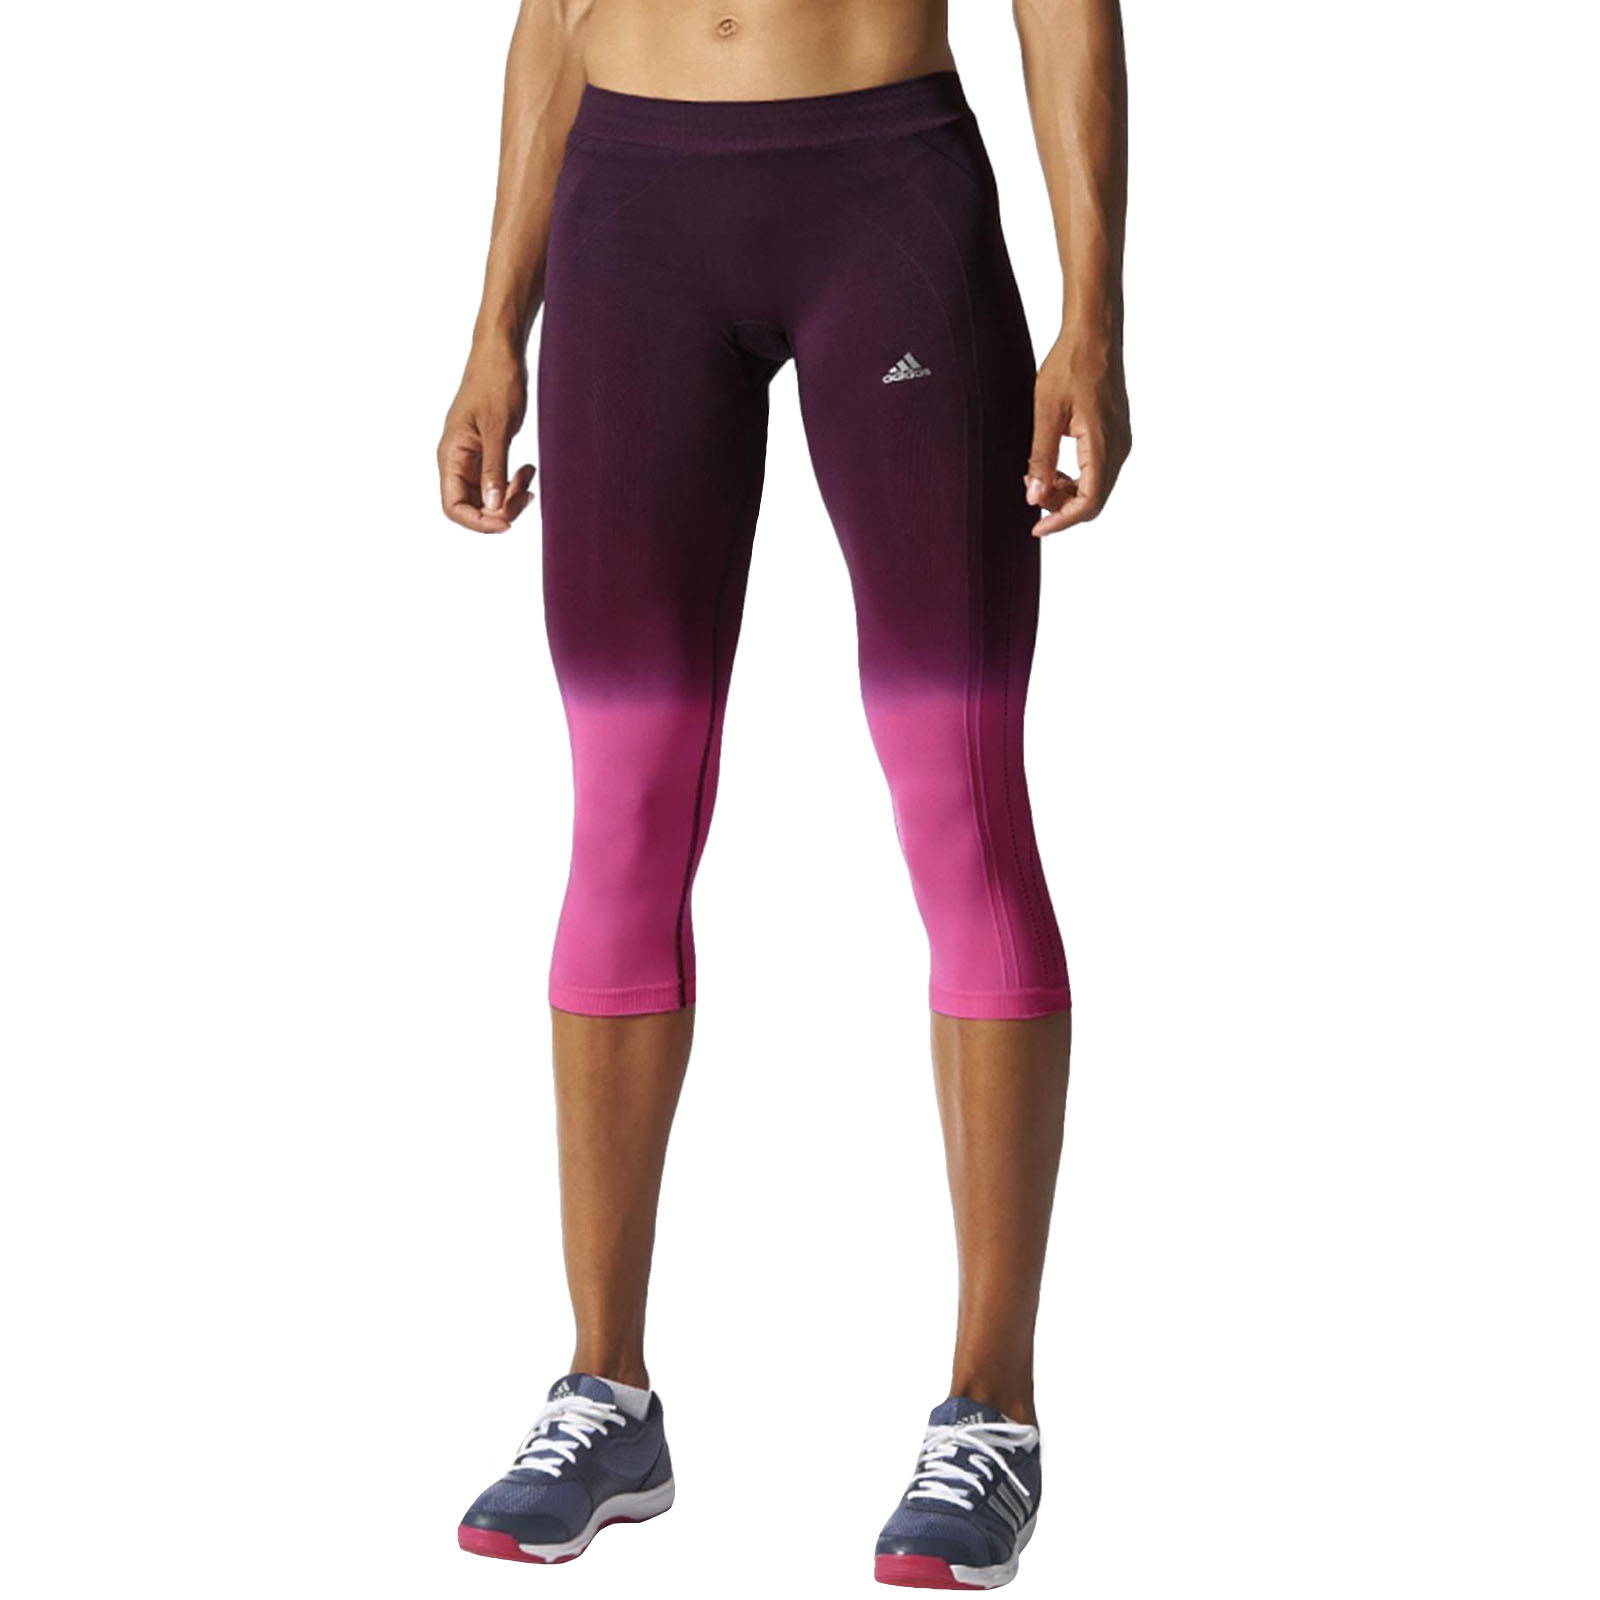 adidas performance adipure damen capri strumpfhosen capri leggings laufsport ebay. Black Bedroom Furniture Sets. Home Design Ideas